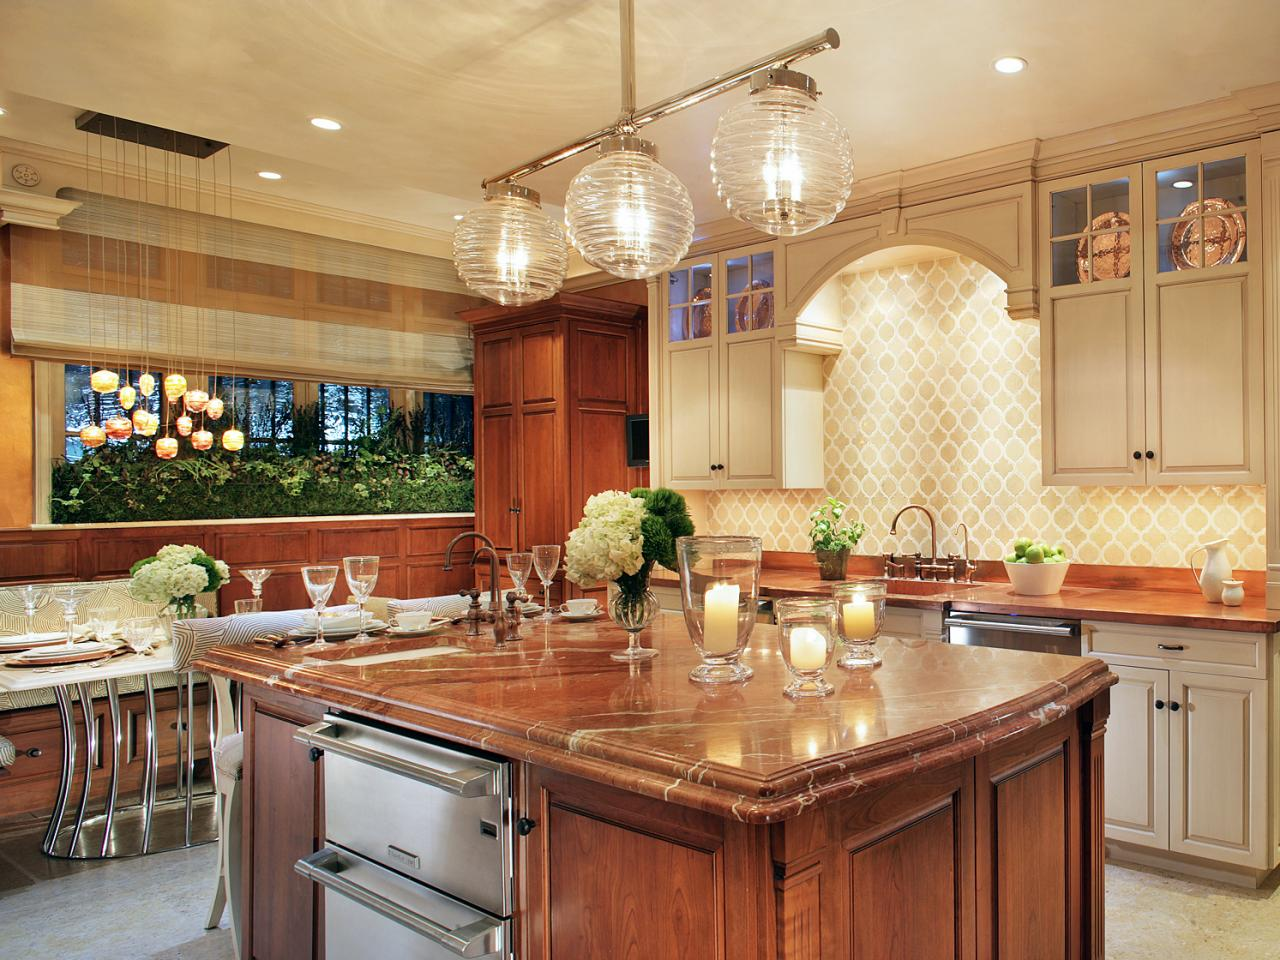 Kitchen design styles pictures ideas tips from hgtv hgtv for Kitchen tradition